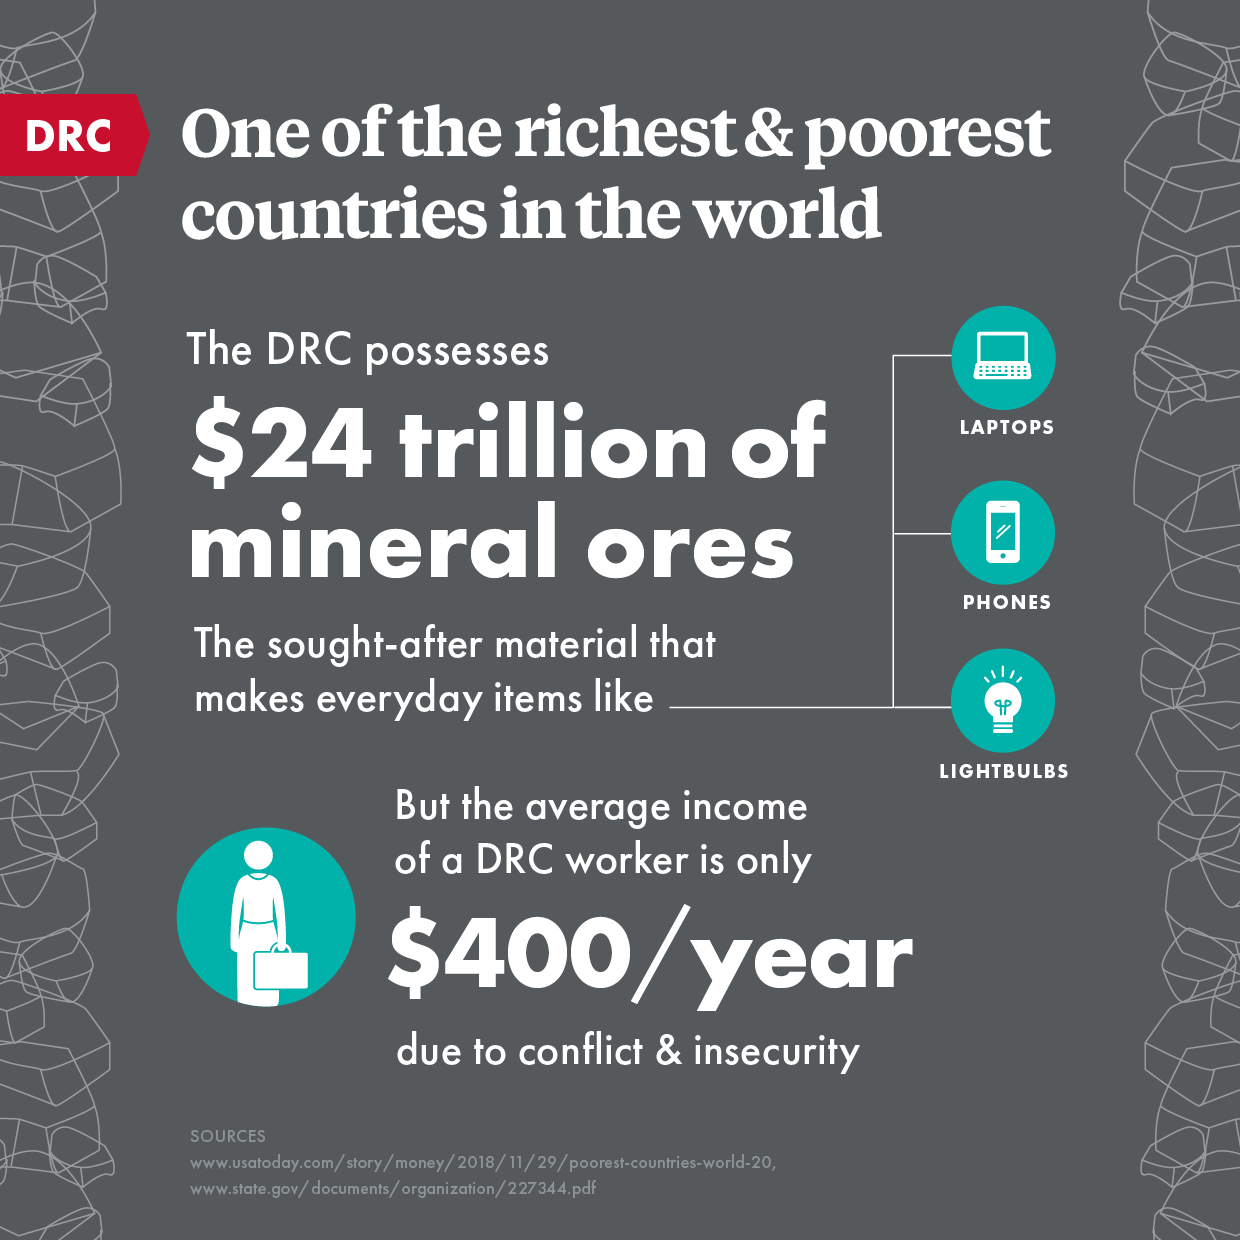 DRC possesses $24 trillion of mineral ores but the average income of a DRC worker is only $400/year